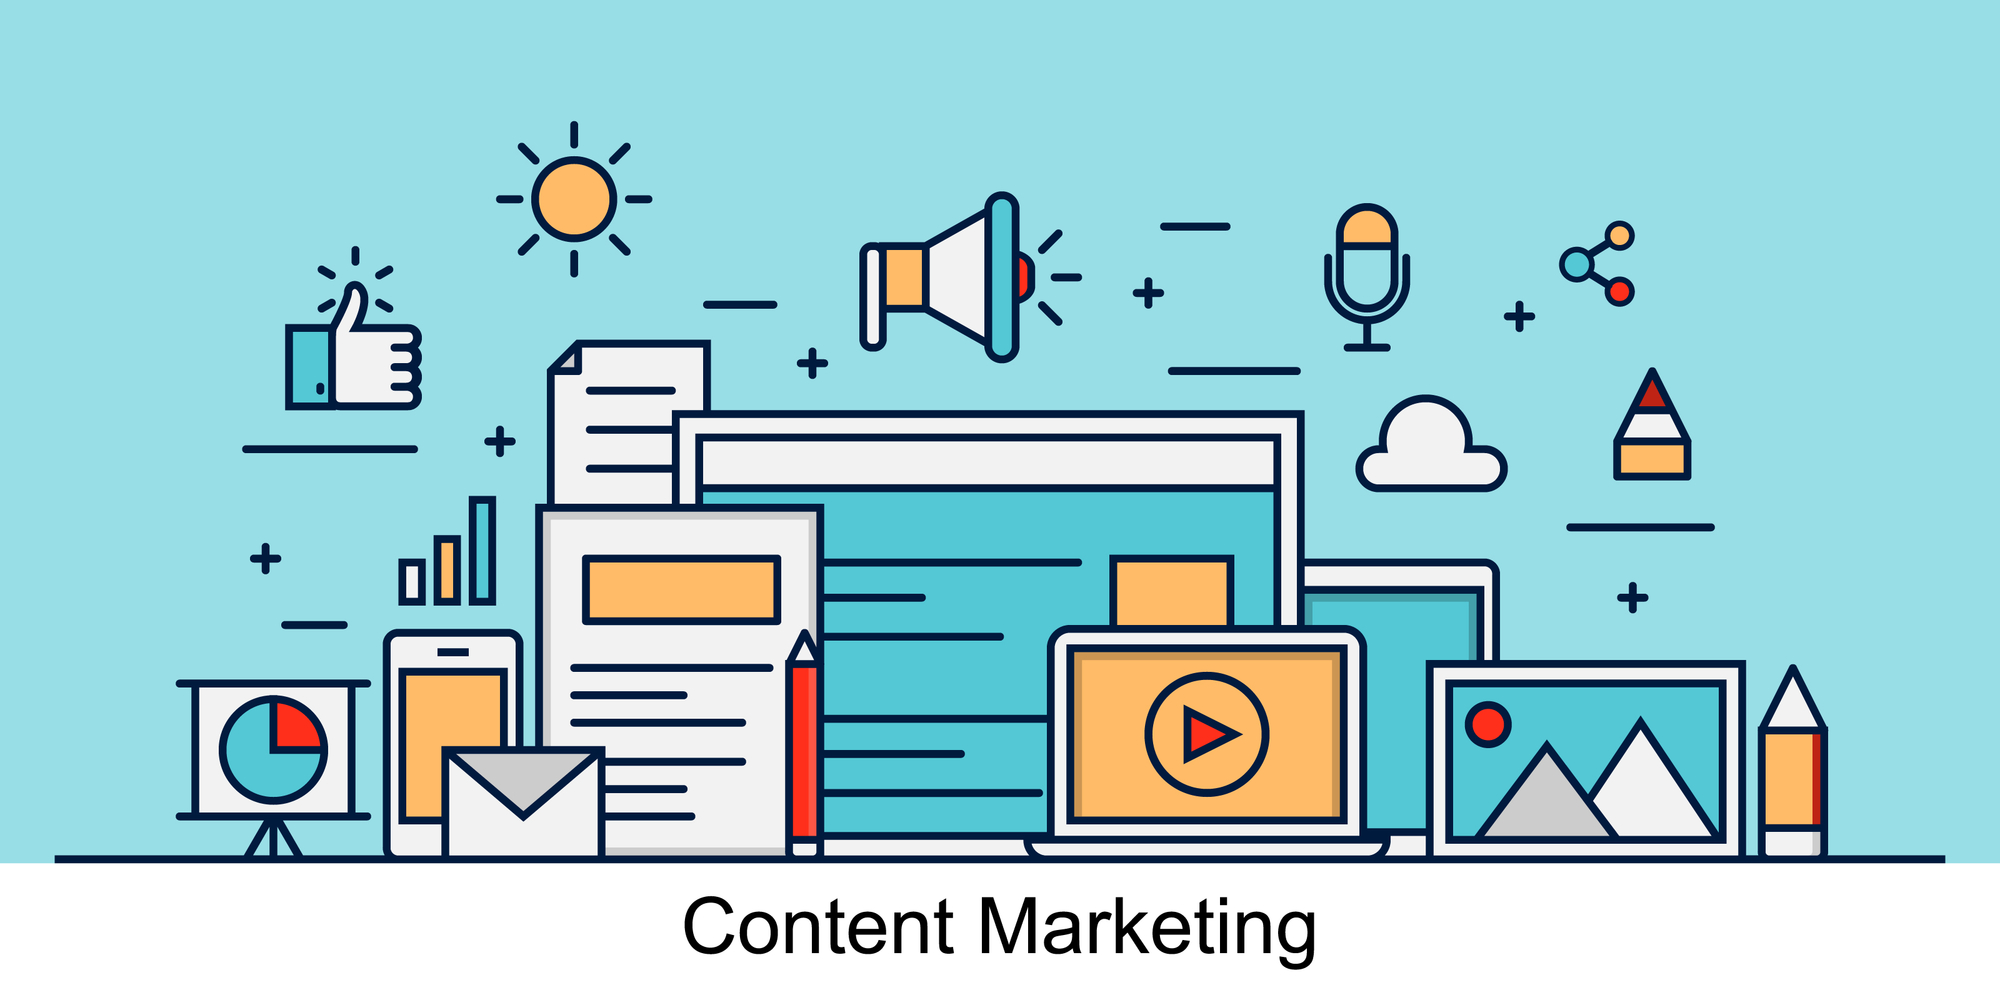 3 Easy Ways to Organize Your Content Today